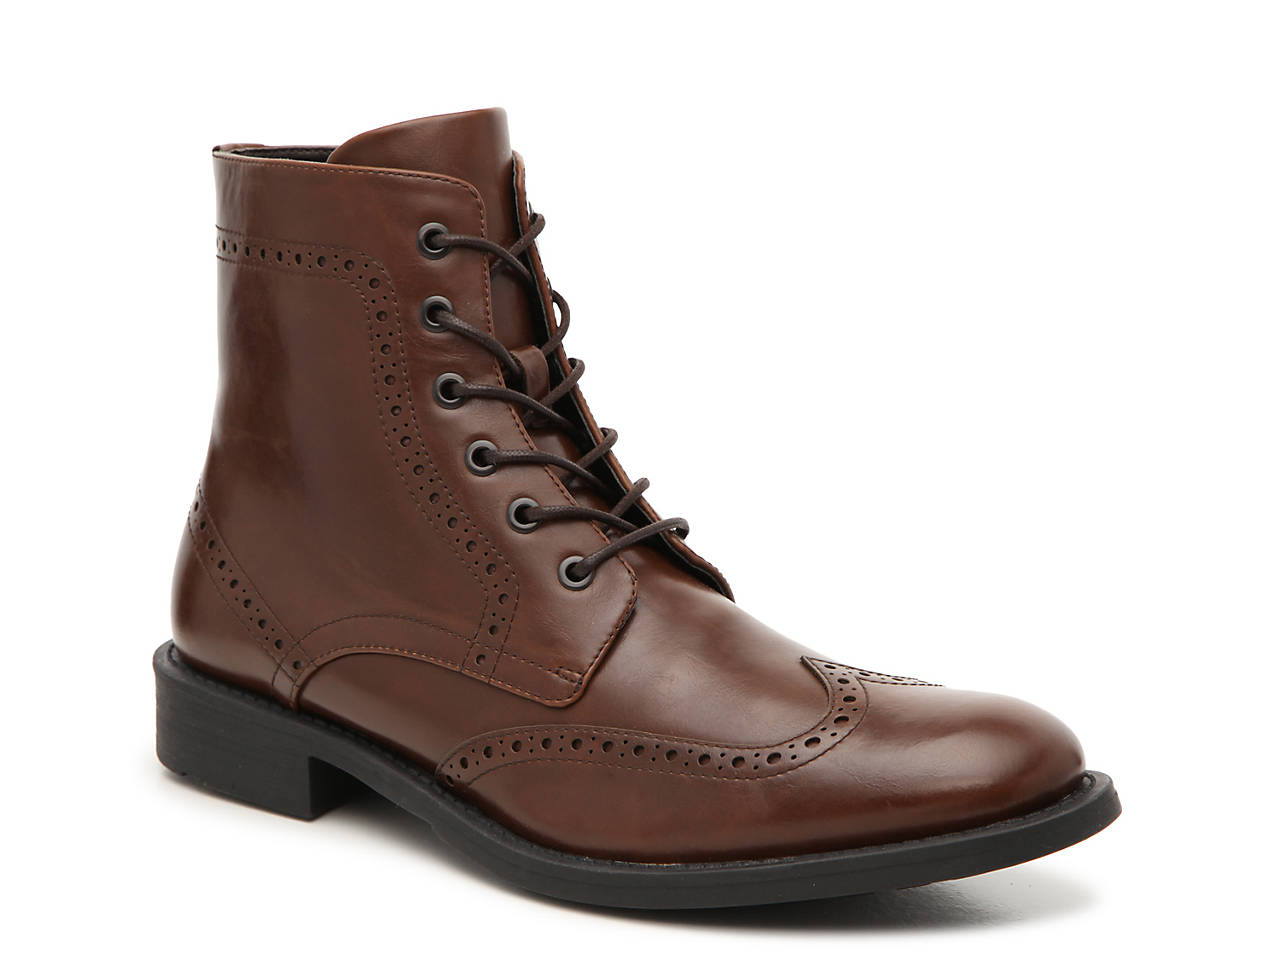 Blind Sided Wingtip Boot by Unlisted